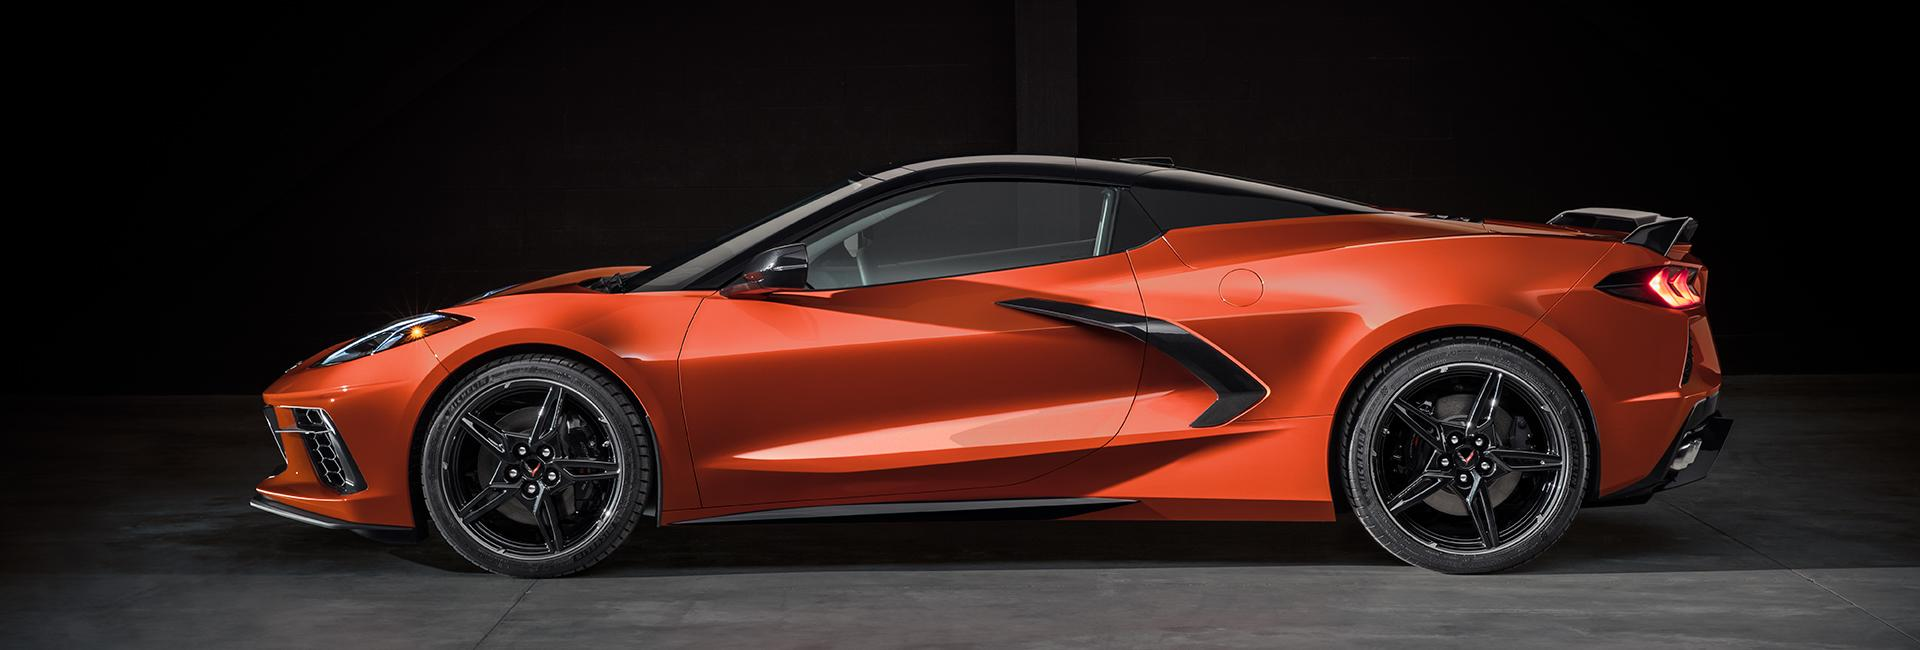 Exterior image of the 2020 Chevy Corvette